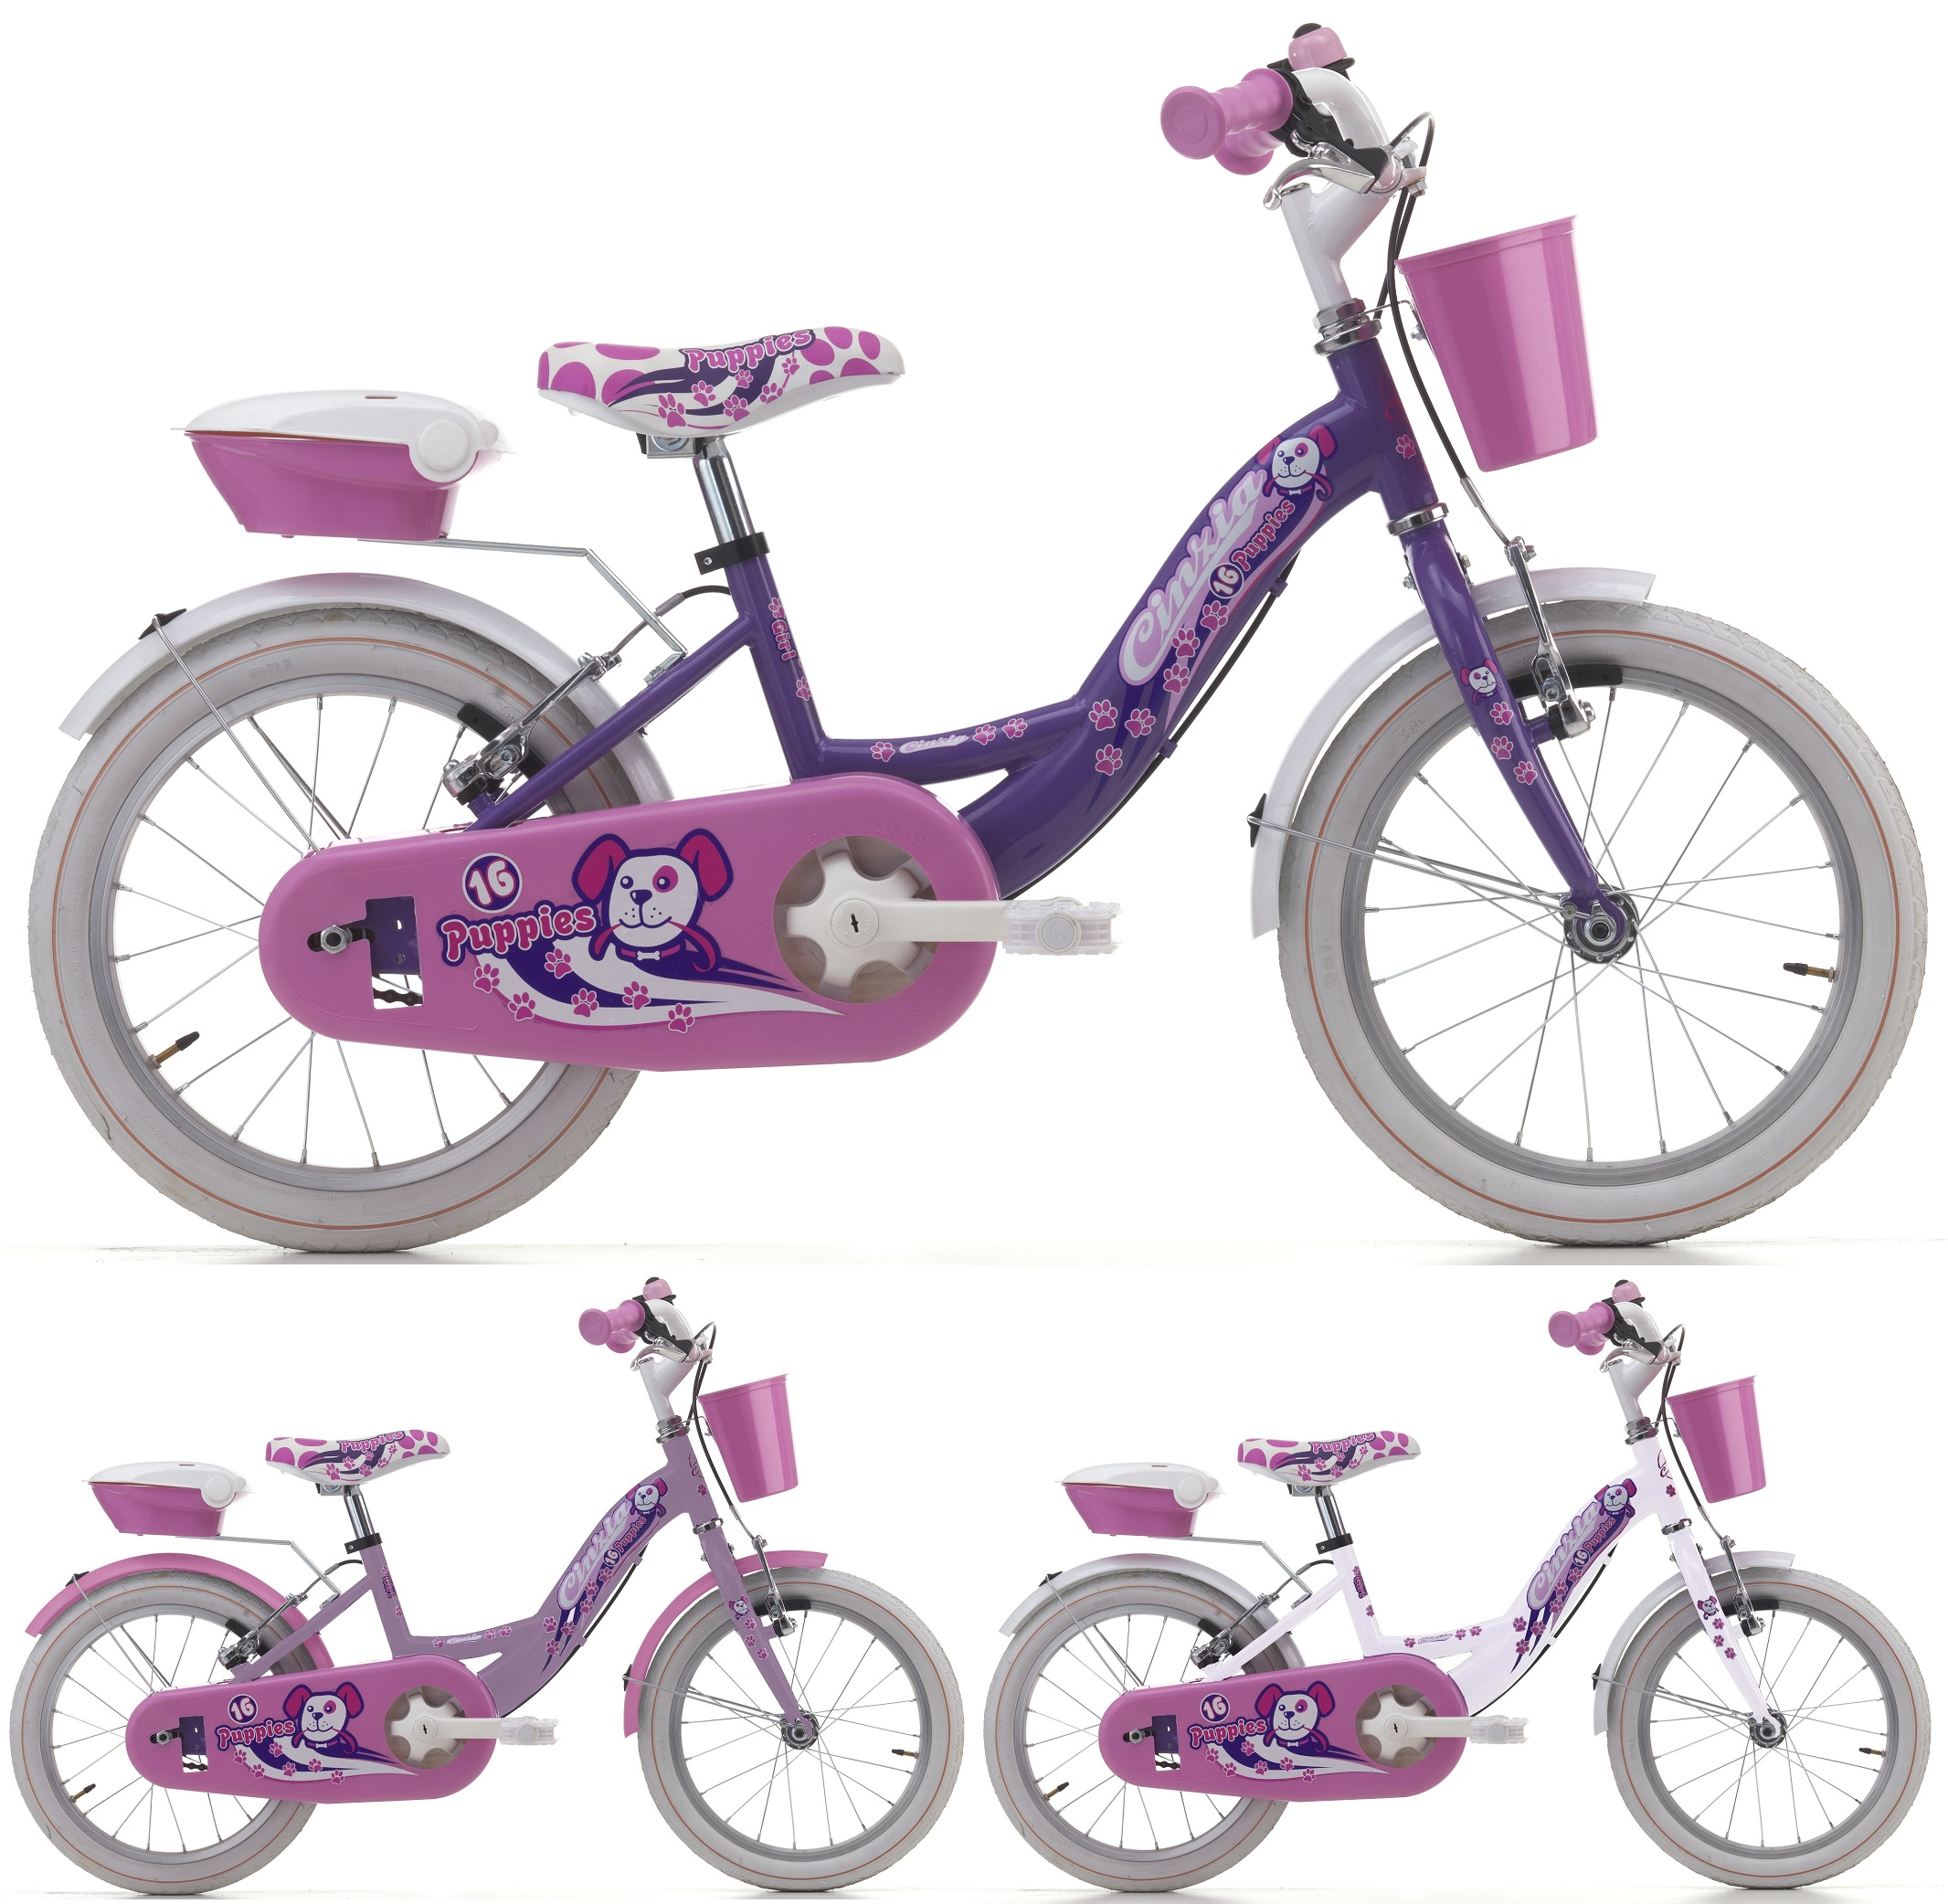 16 zoll cinzia puppies girl m dchen fahrrad fahrr der kinderr der kinderr der 16 zoll. Black Bedroom Furniture Sets. Home Design Ideas